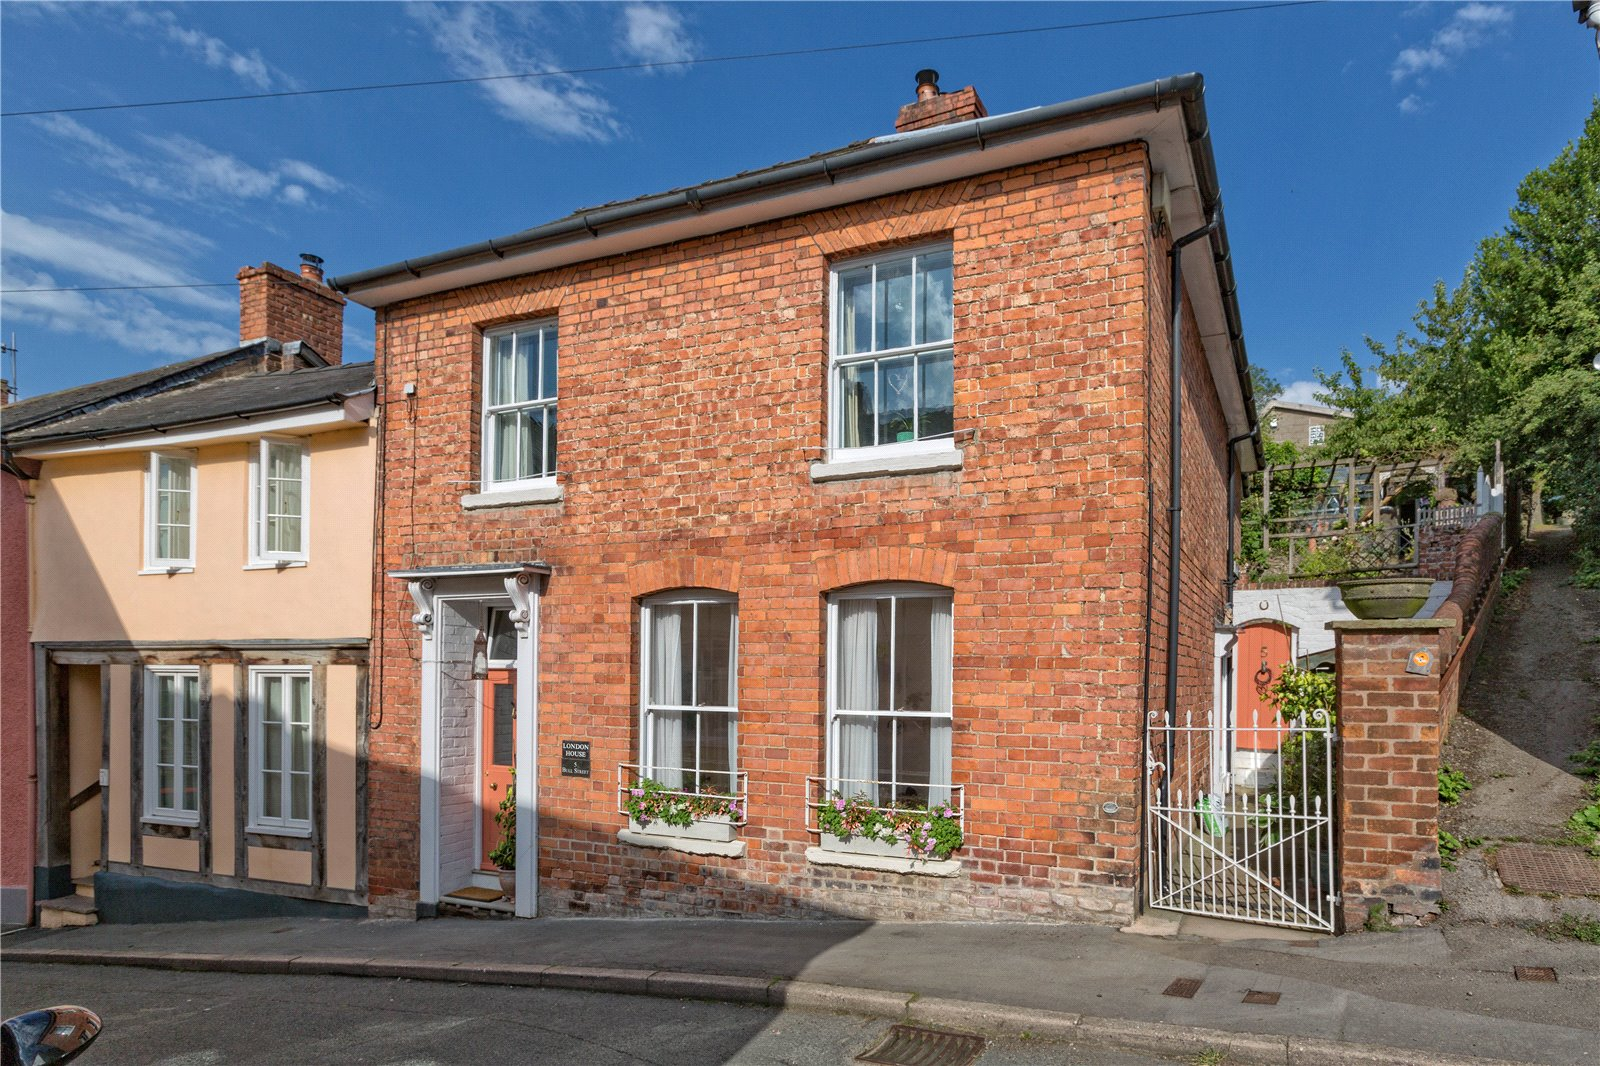 London House, 5 Bull Street, Bishops Castle, Shropshire, SY9